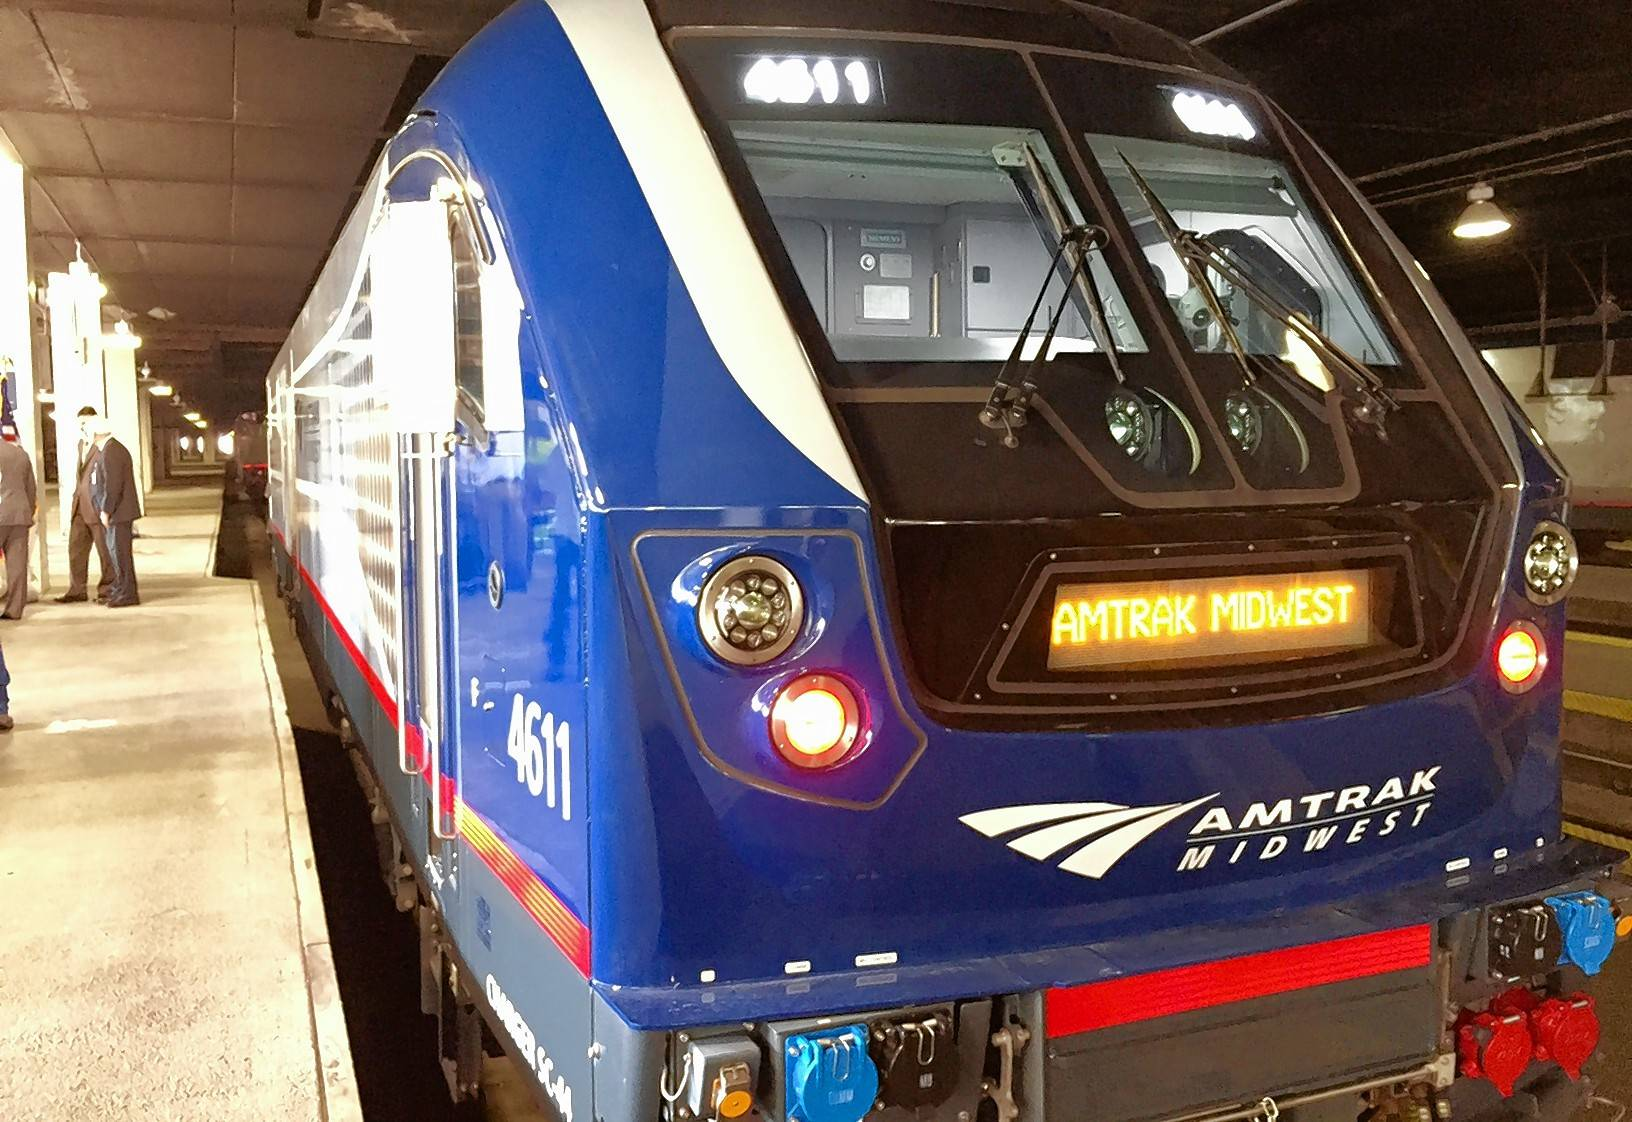 Amtrak and IDOT officials unveiled new locomotives Monday at Union Station for use in a high-speed rail route between Chicago and St. Louis.